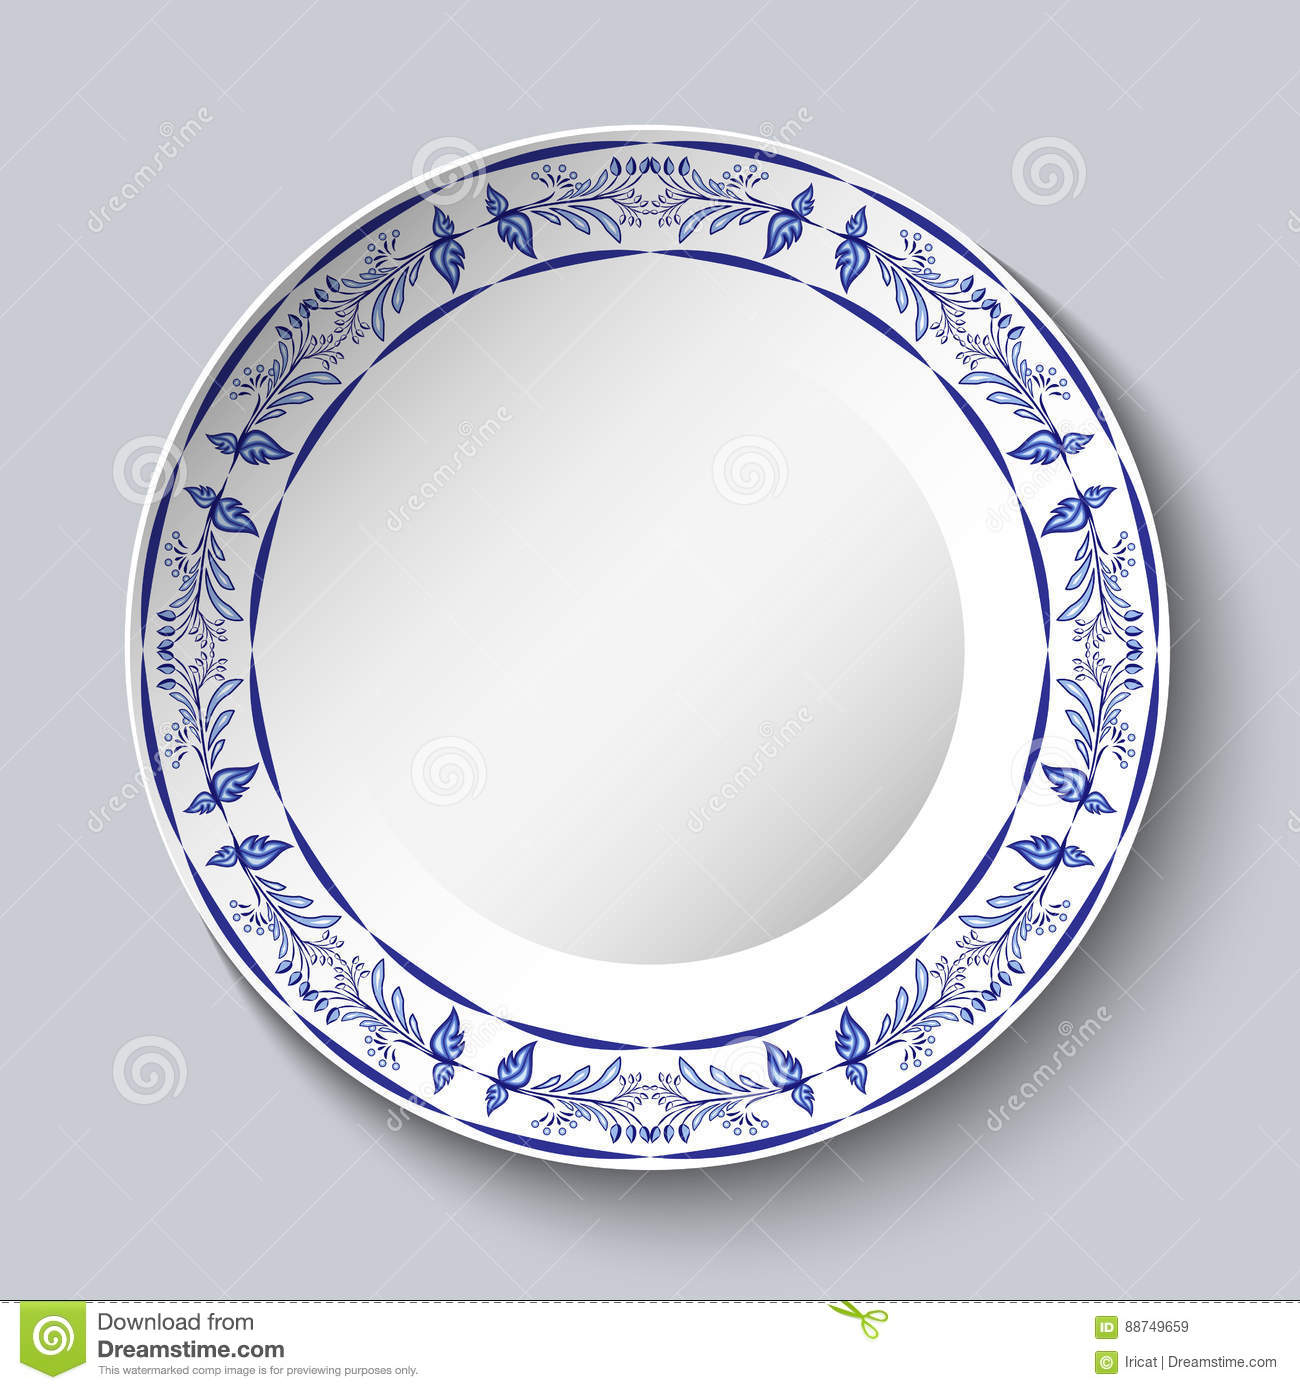 Round blue floral frame. Styling elements based on Chinese or Russian porcelain painting. Ornament shown in a ceramic dish.